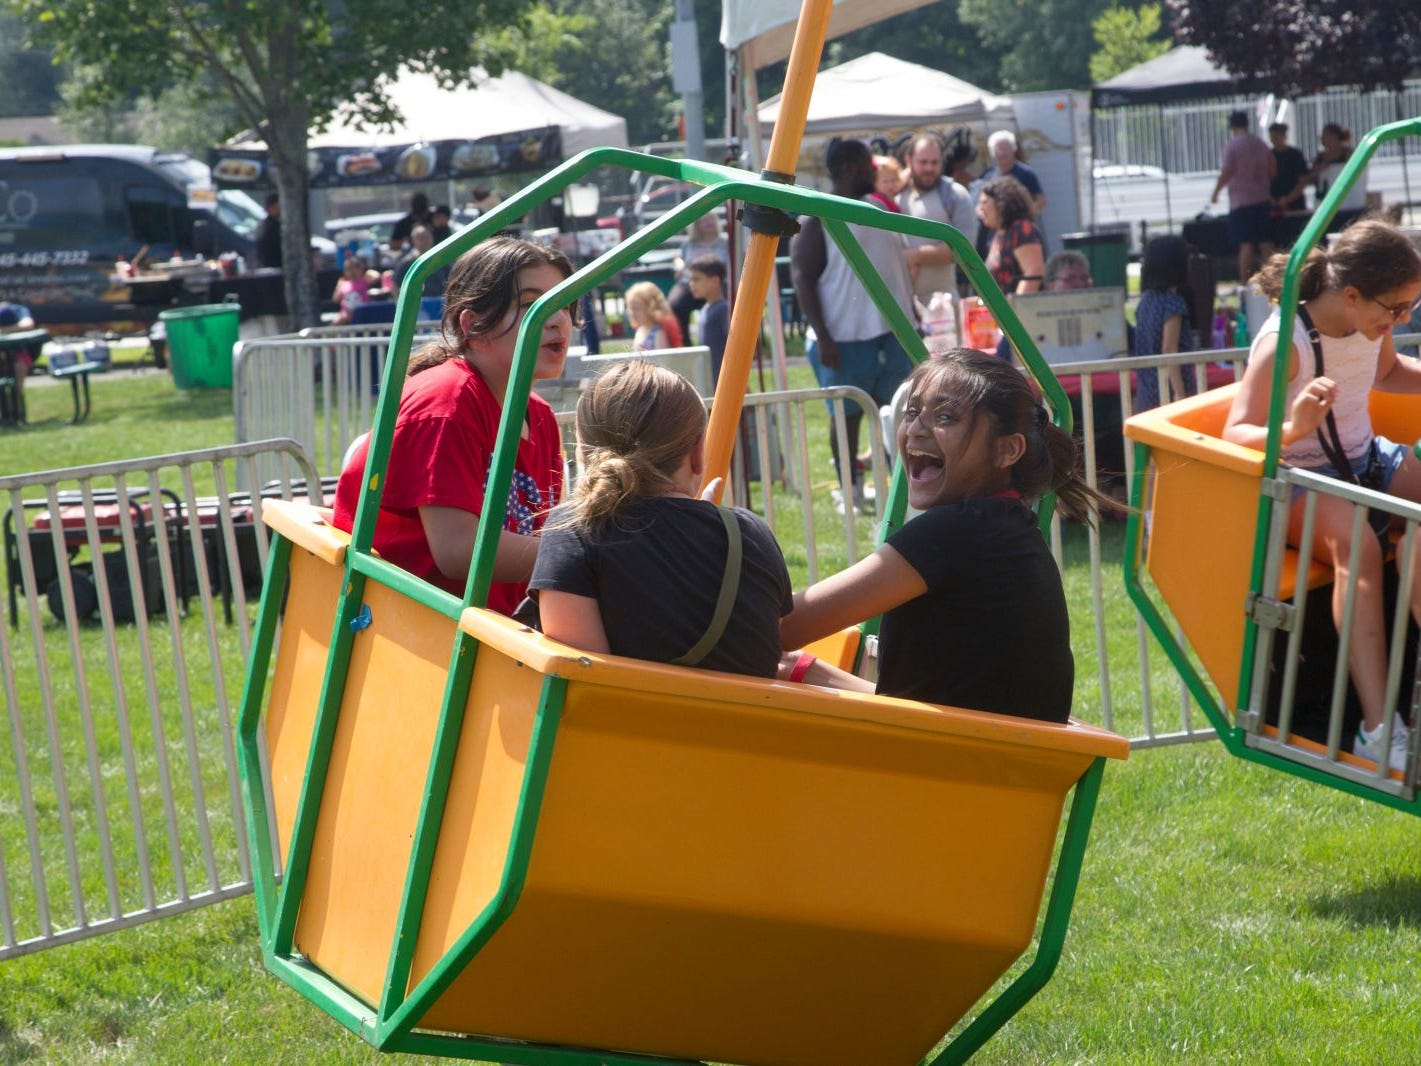 Closter's 58th annual Labor Day town celebration at Memorial Park. 09/03/2018